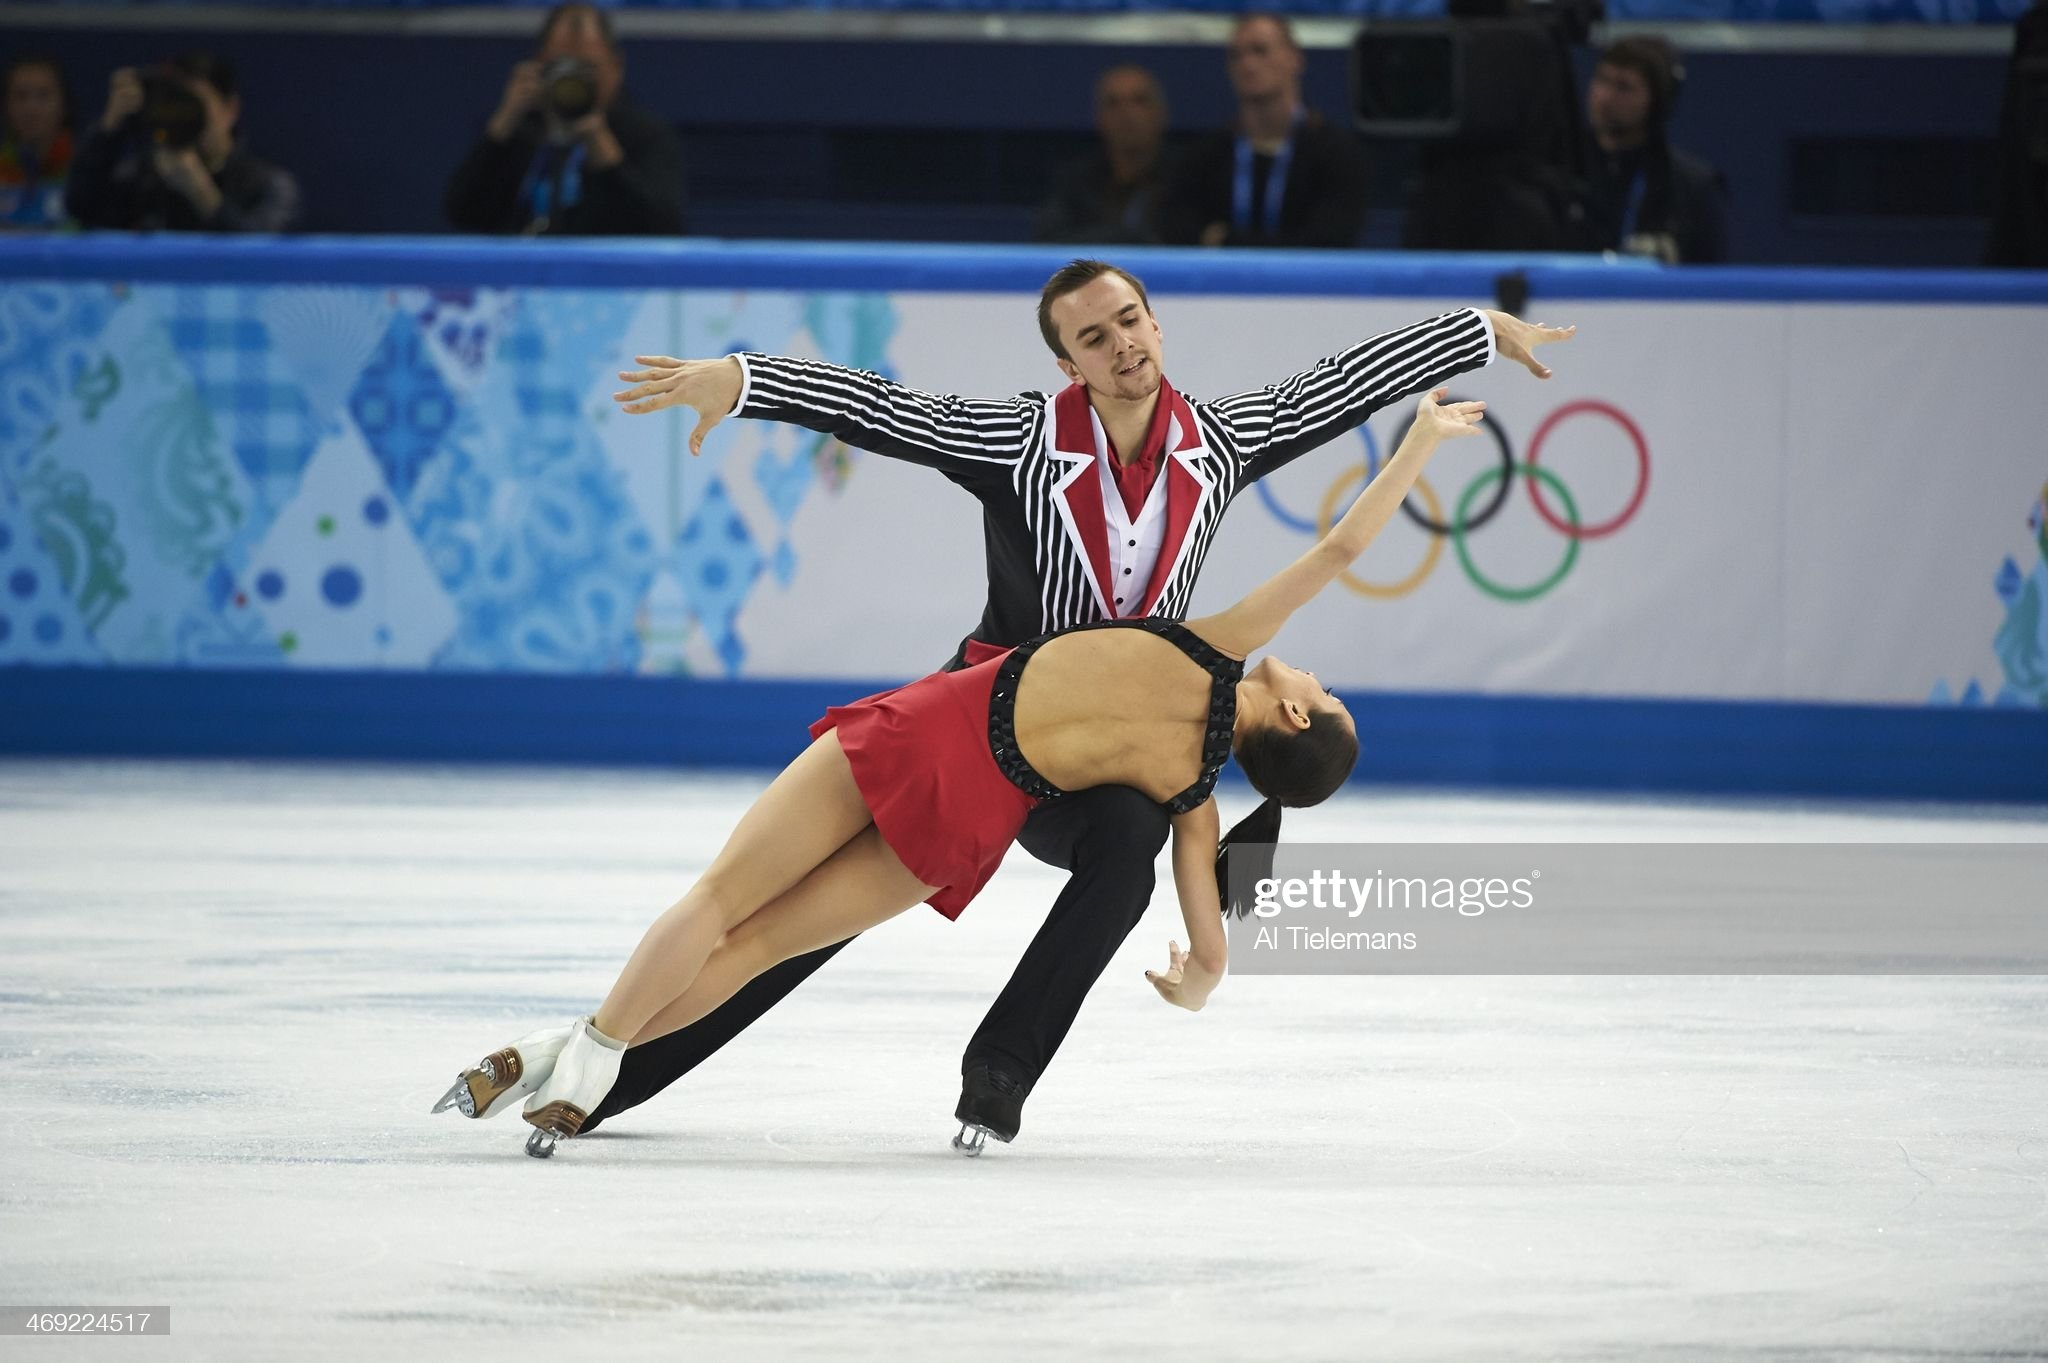 https://media.gettyimages.com/photos/figure-skating-2014-winter-olympics-russia-ksenia-stolbova-and-fedor-picture-id469224517?s=2048x2048